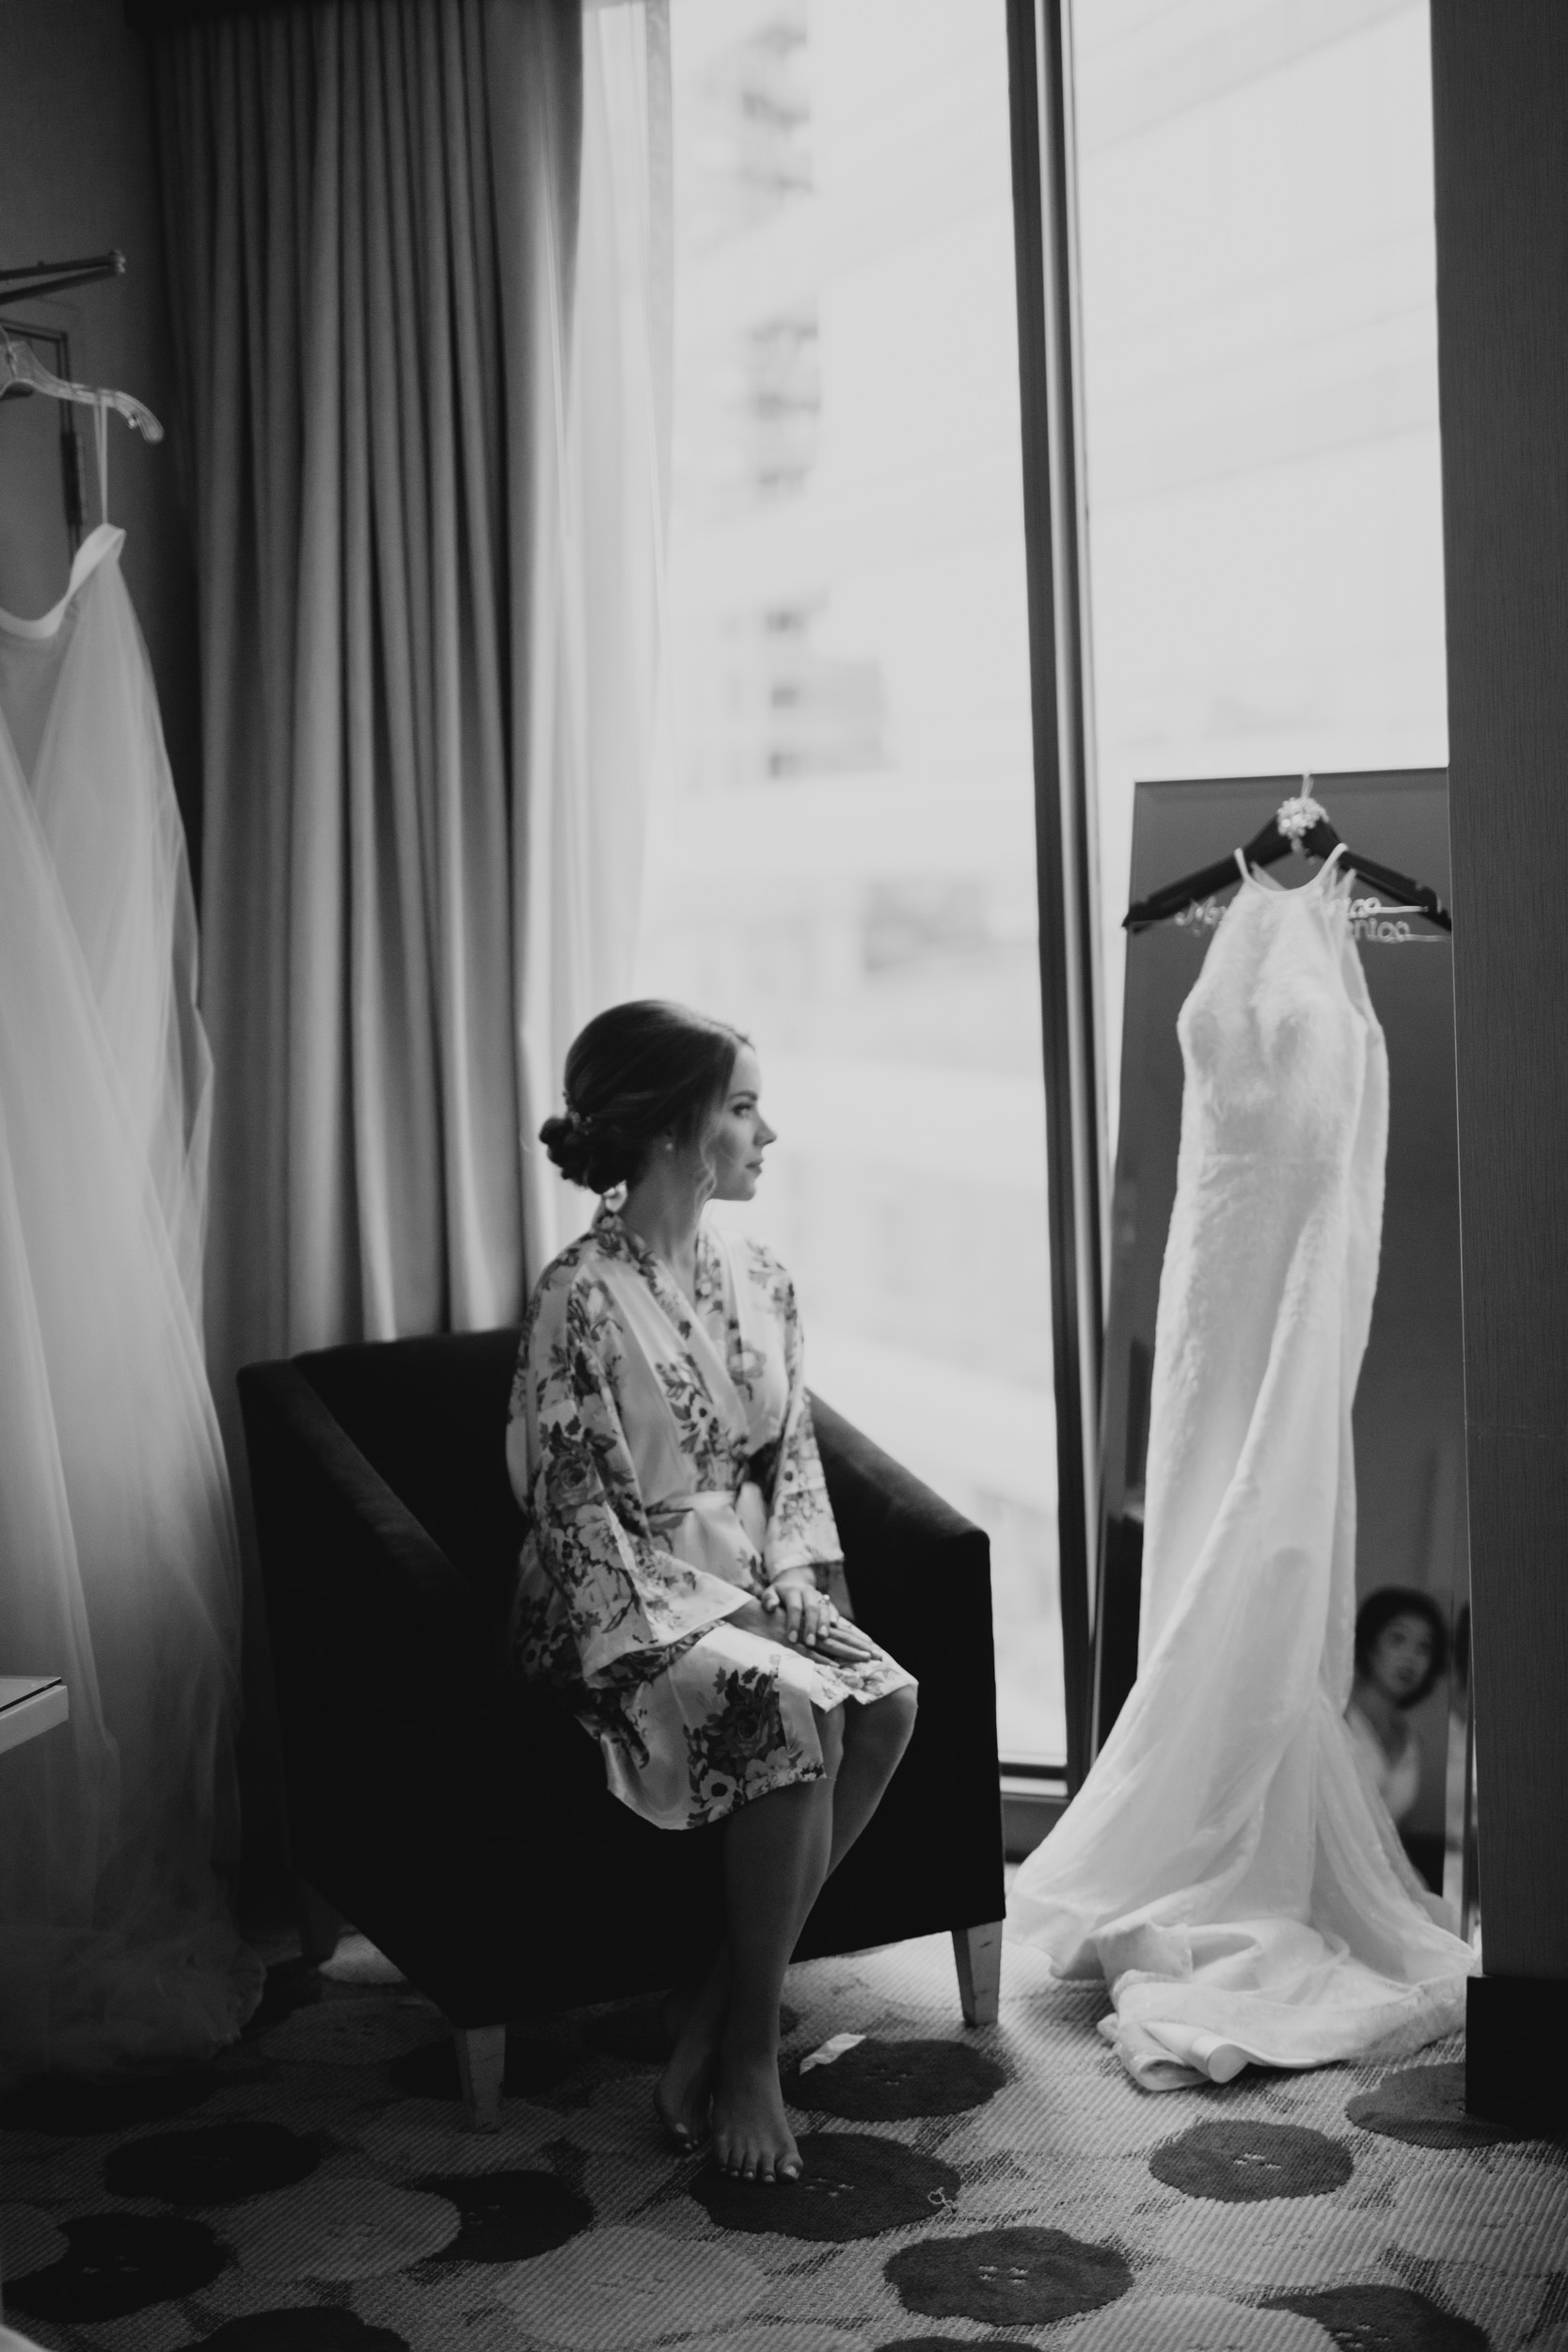 Downtown Chicago Wedding_Polly C Photography 1706140616.jpg